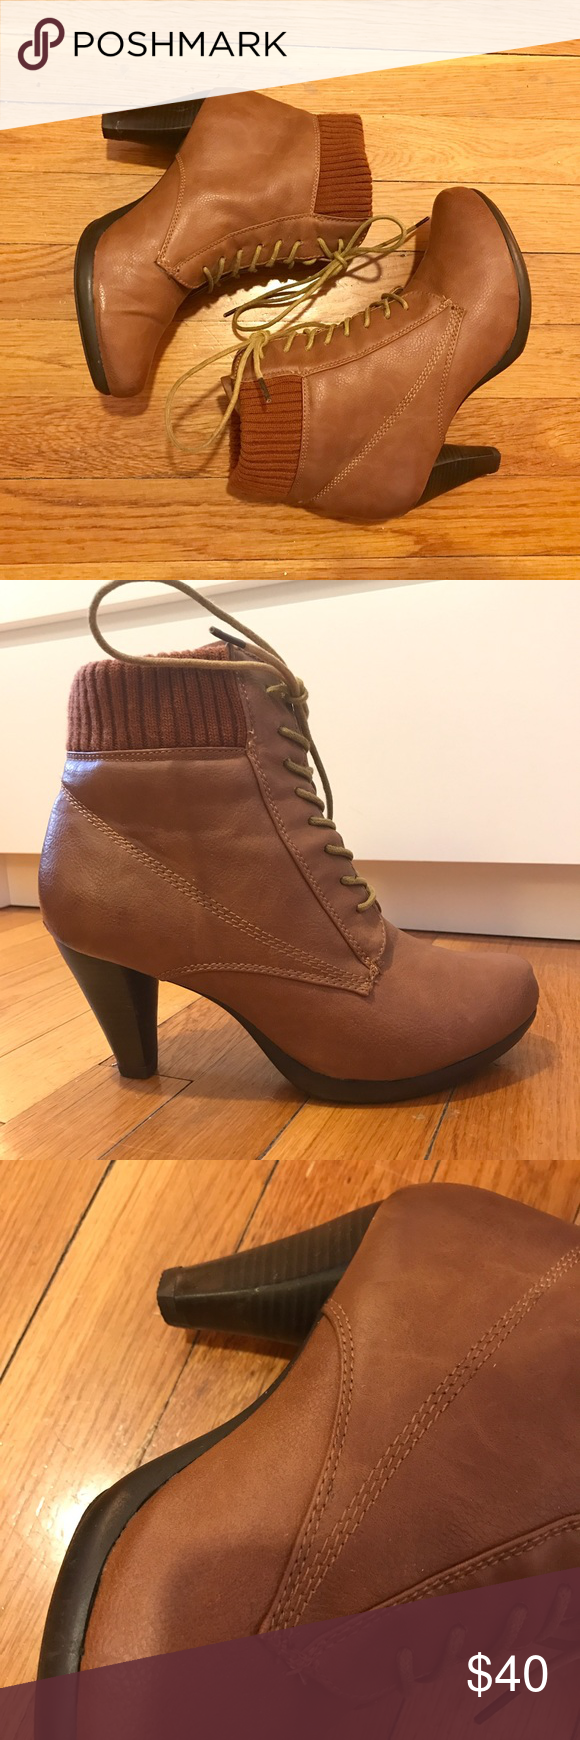 Camel booties Chic leather booties with rubber sole and knit detail. Lace up front and comfortable/manageable heel height. Shoes Ankle Boots & Booties